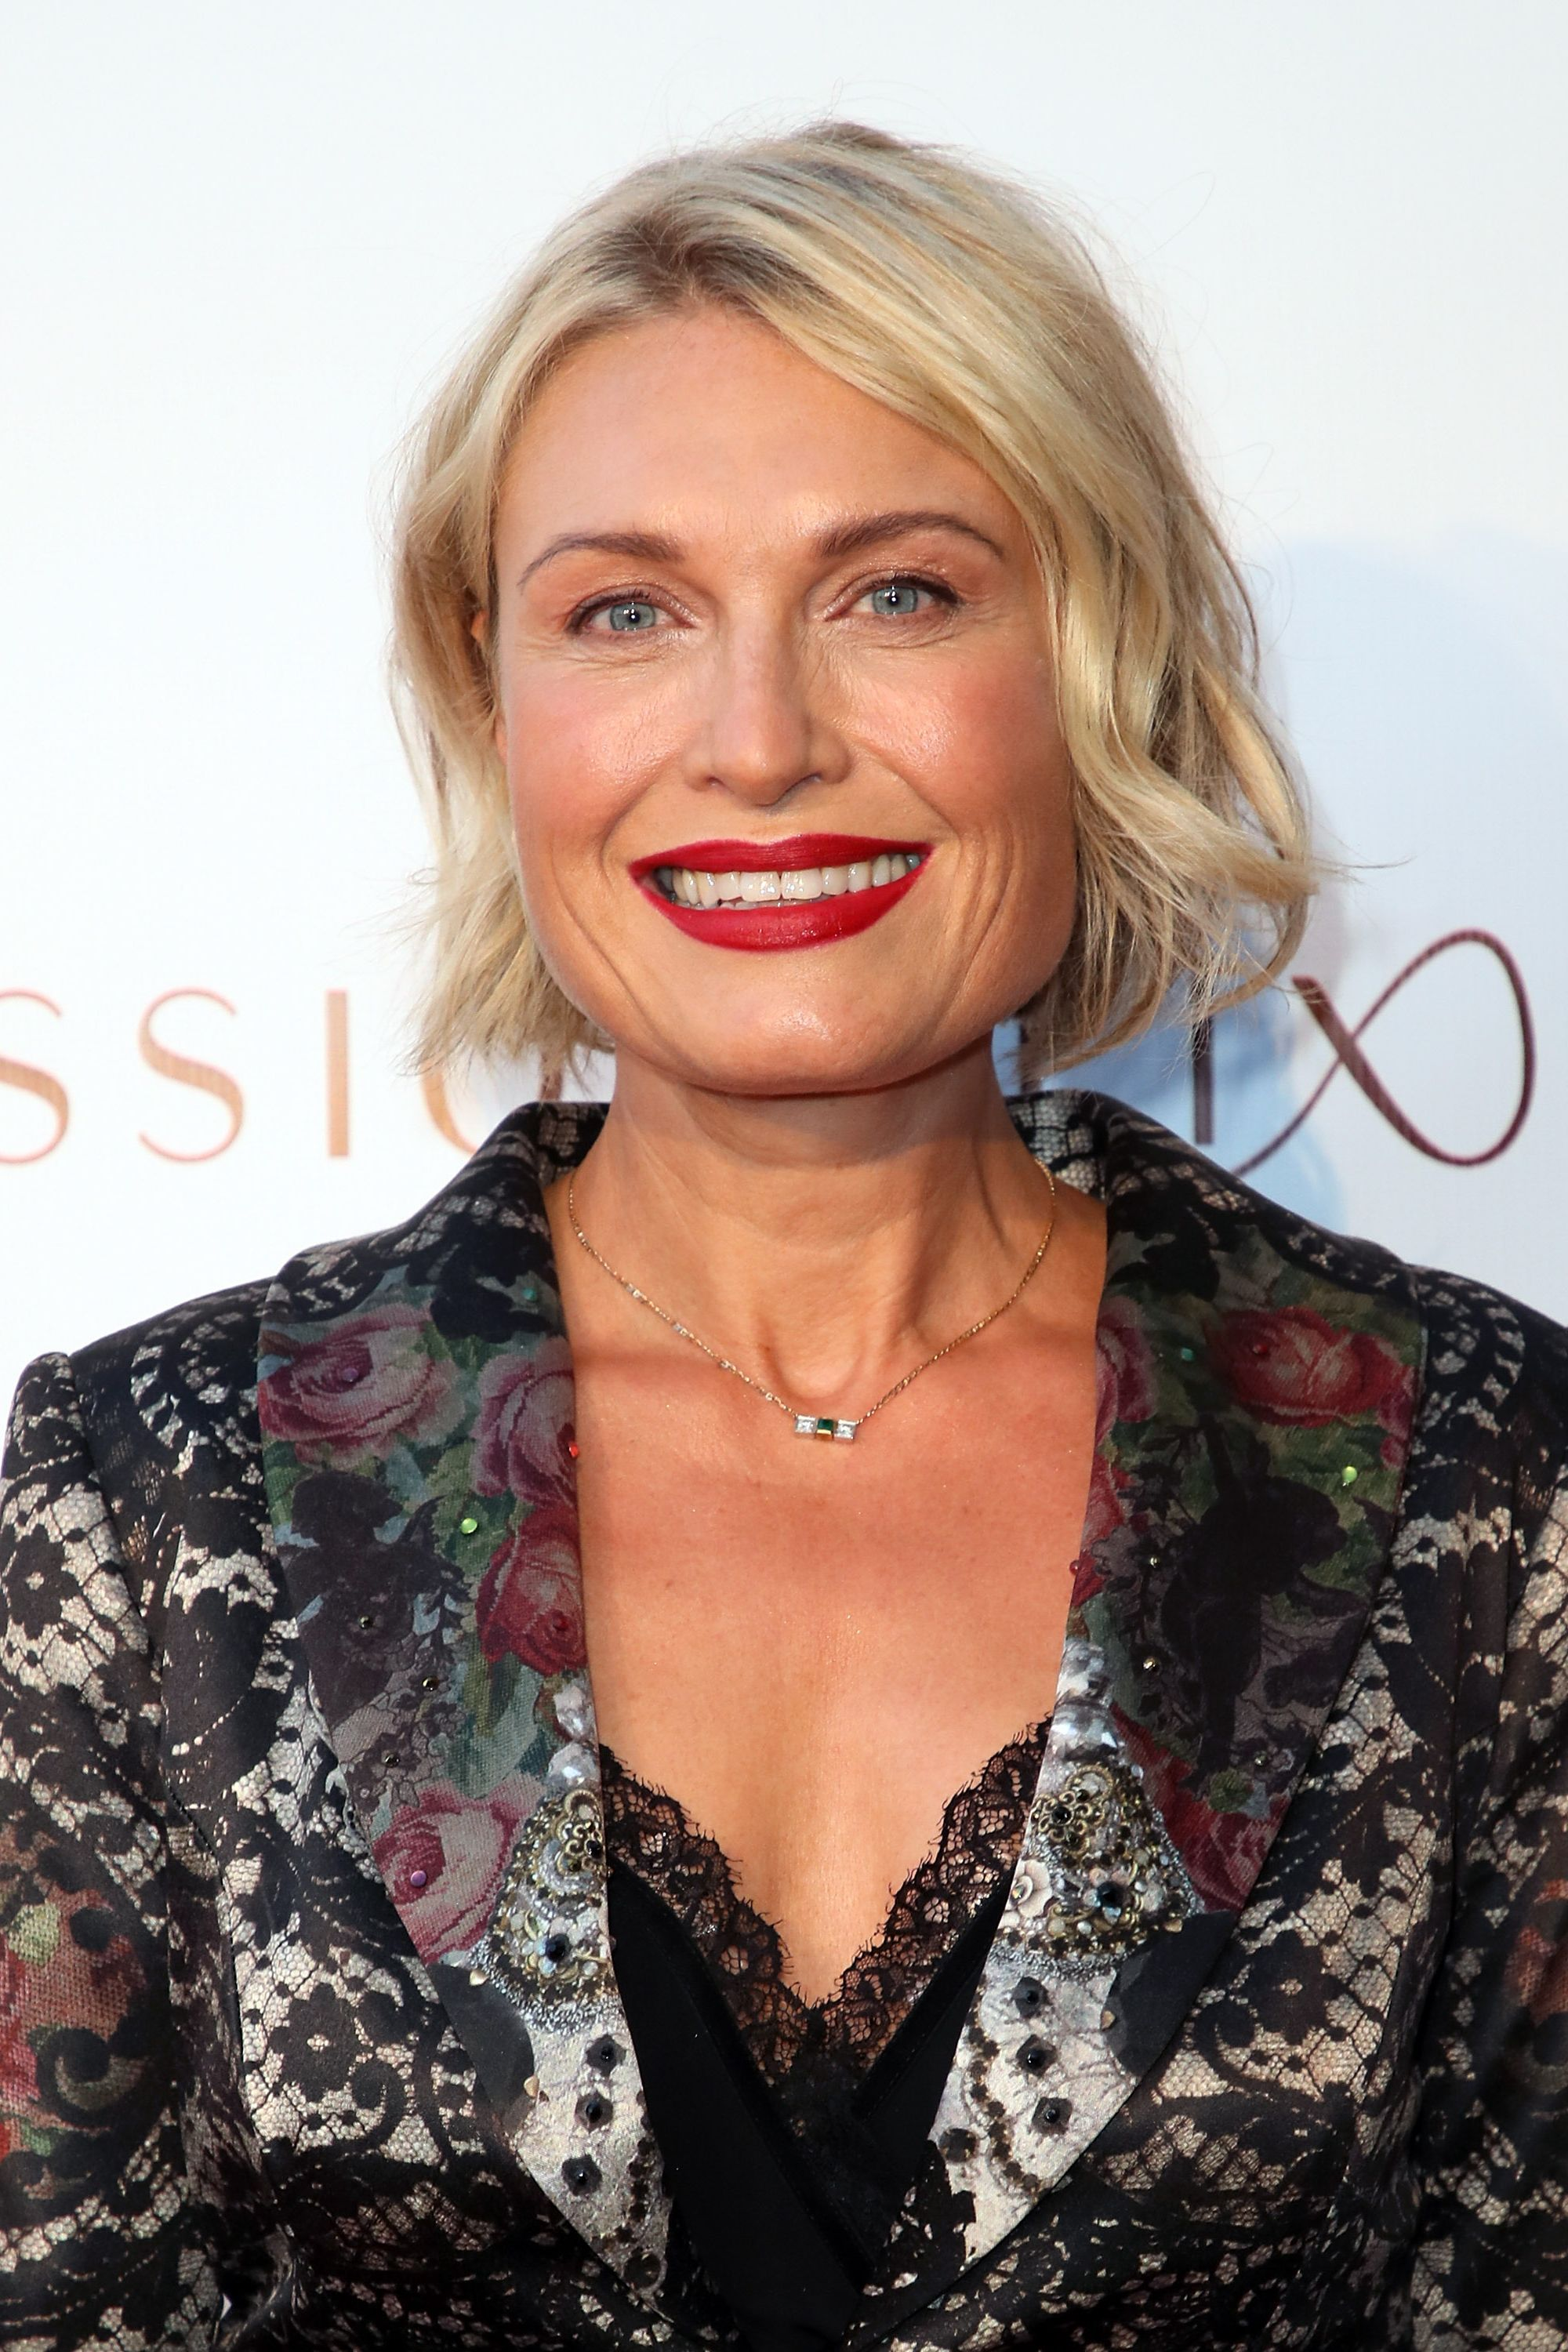 His sister, Tosca Musk, is a filmmaker.